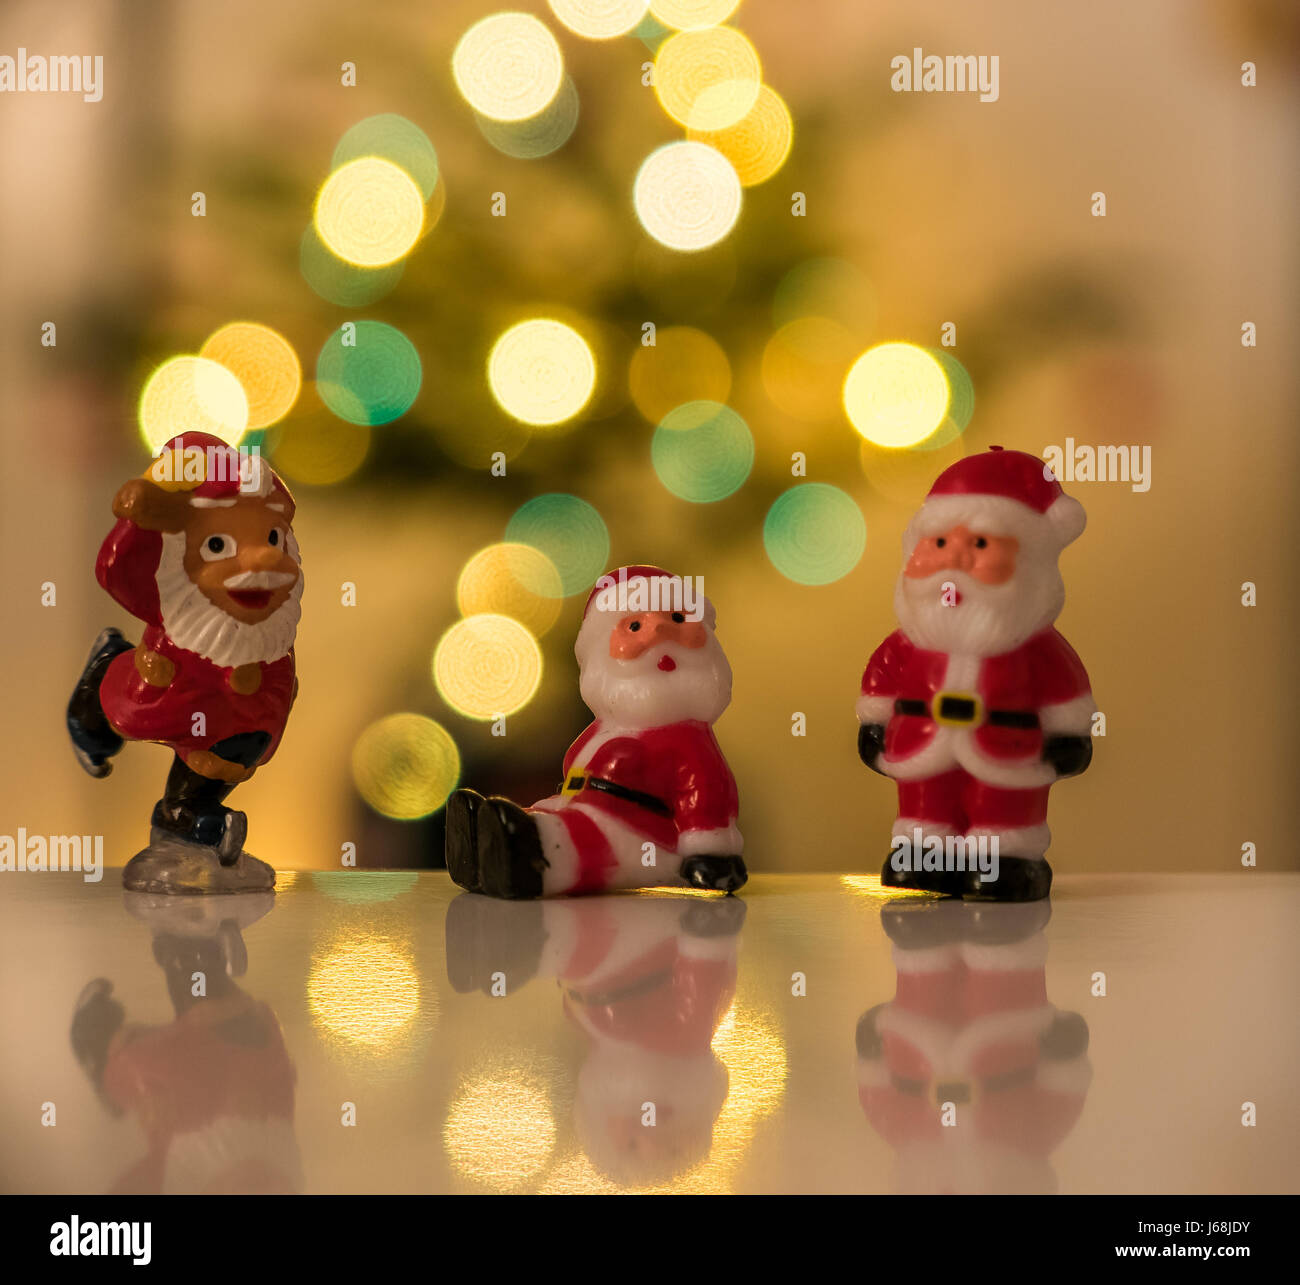 Fun Father Christmas figurines on white surface with Christmas ...